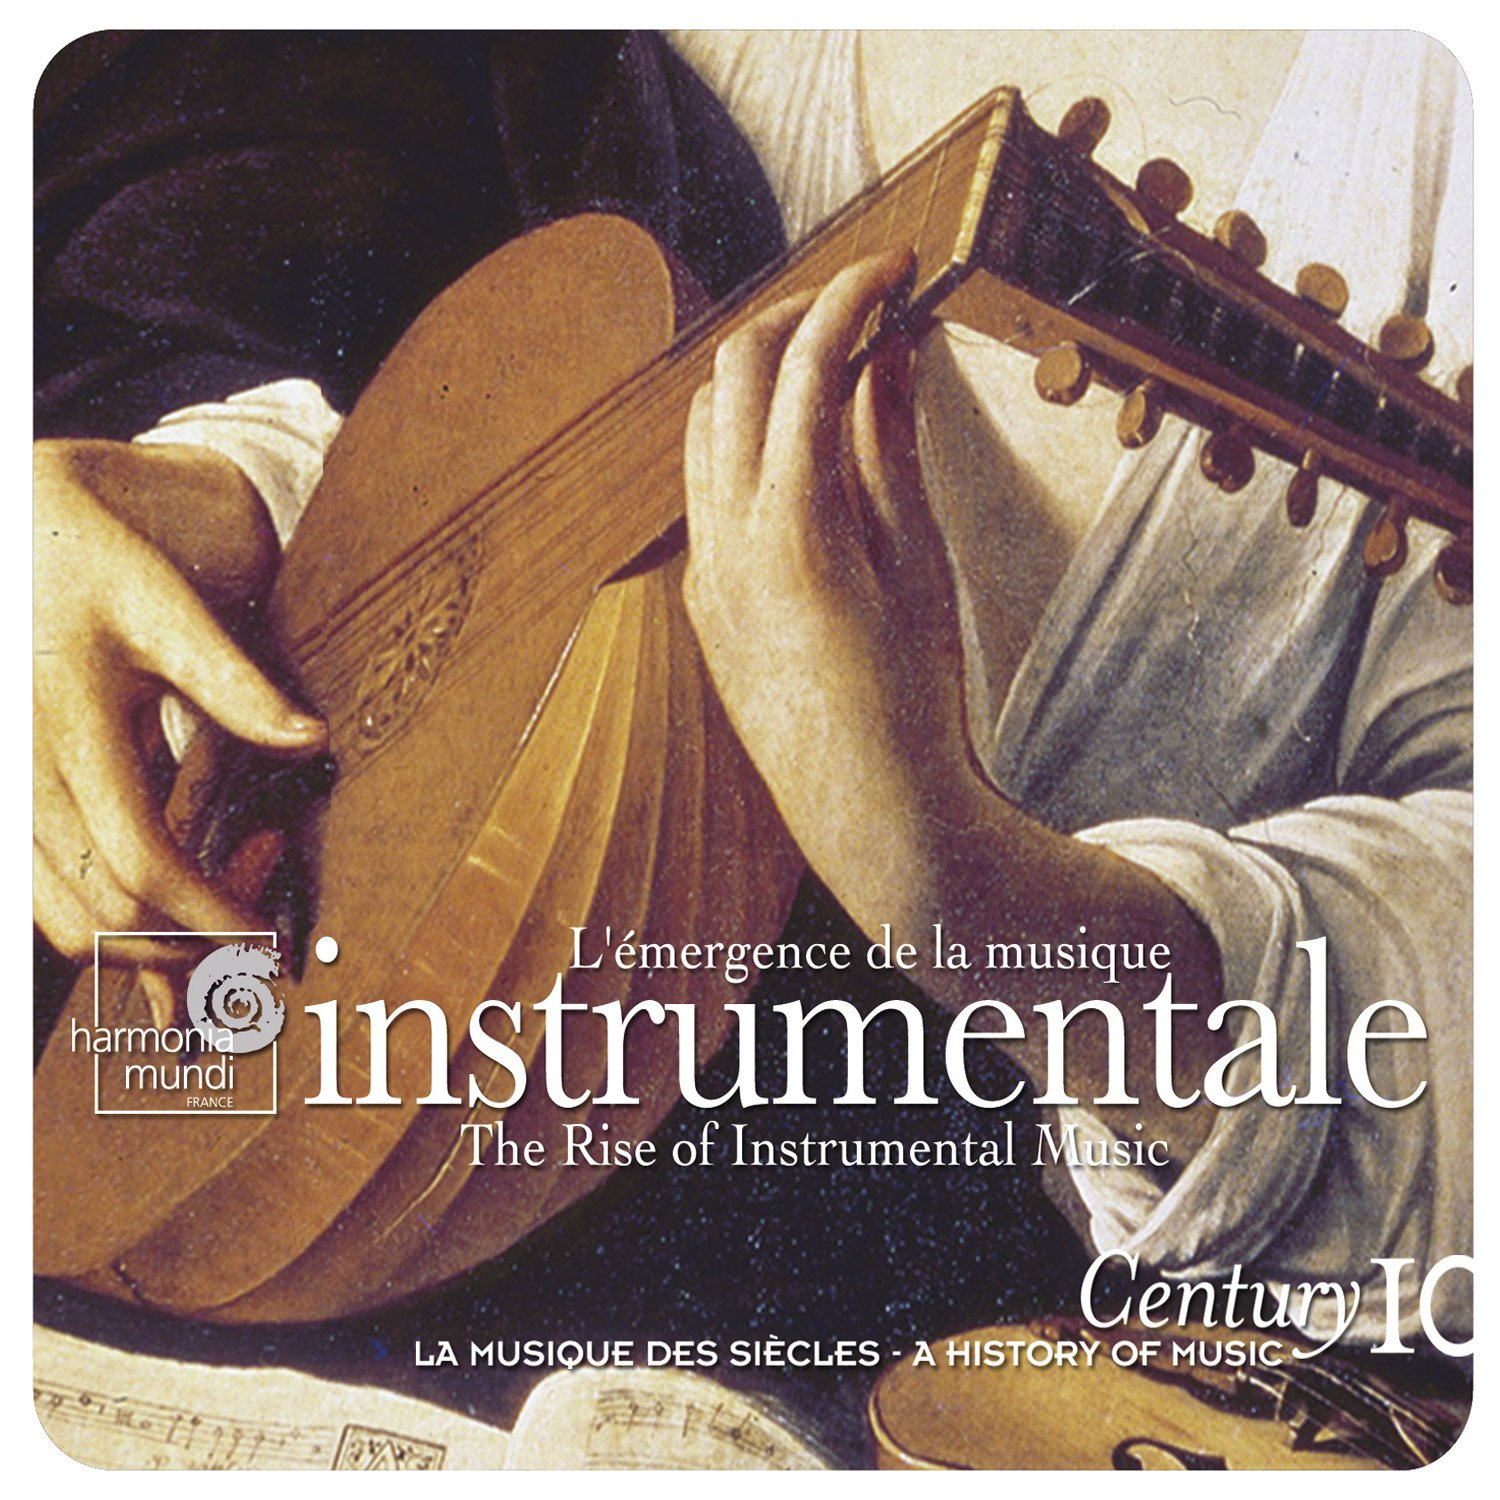 L'émergence de la Musique Instrumentale / The Rise of Instrumental Music (A History of Music, Century, Vol. 10) by Harmonia Mundi